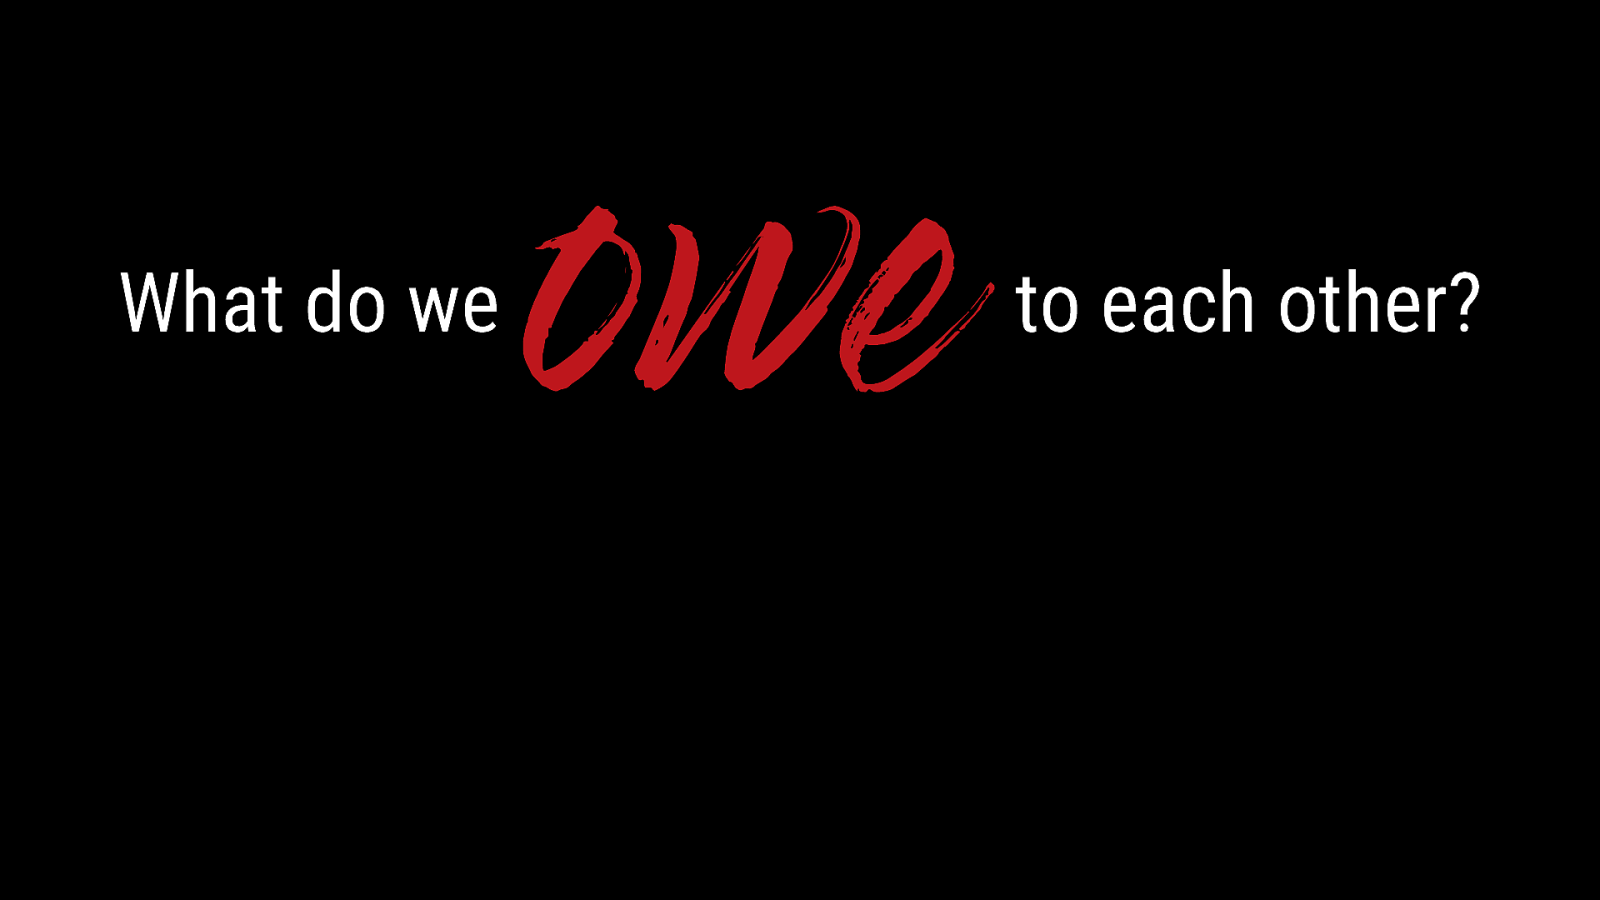 Keynote: What do we owe to each other?